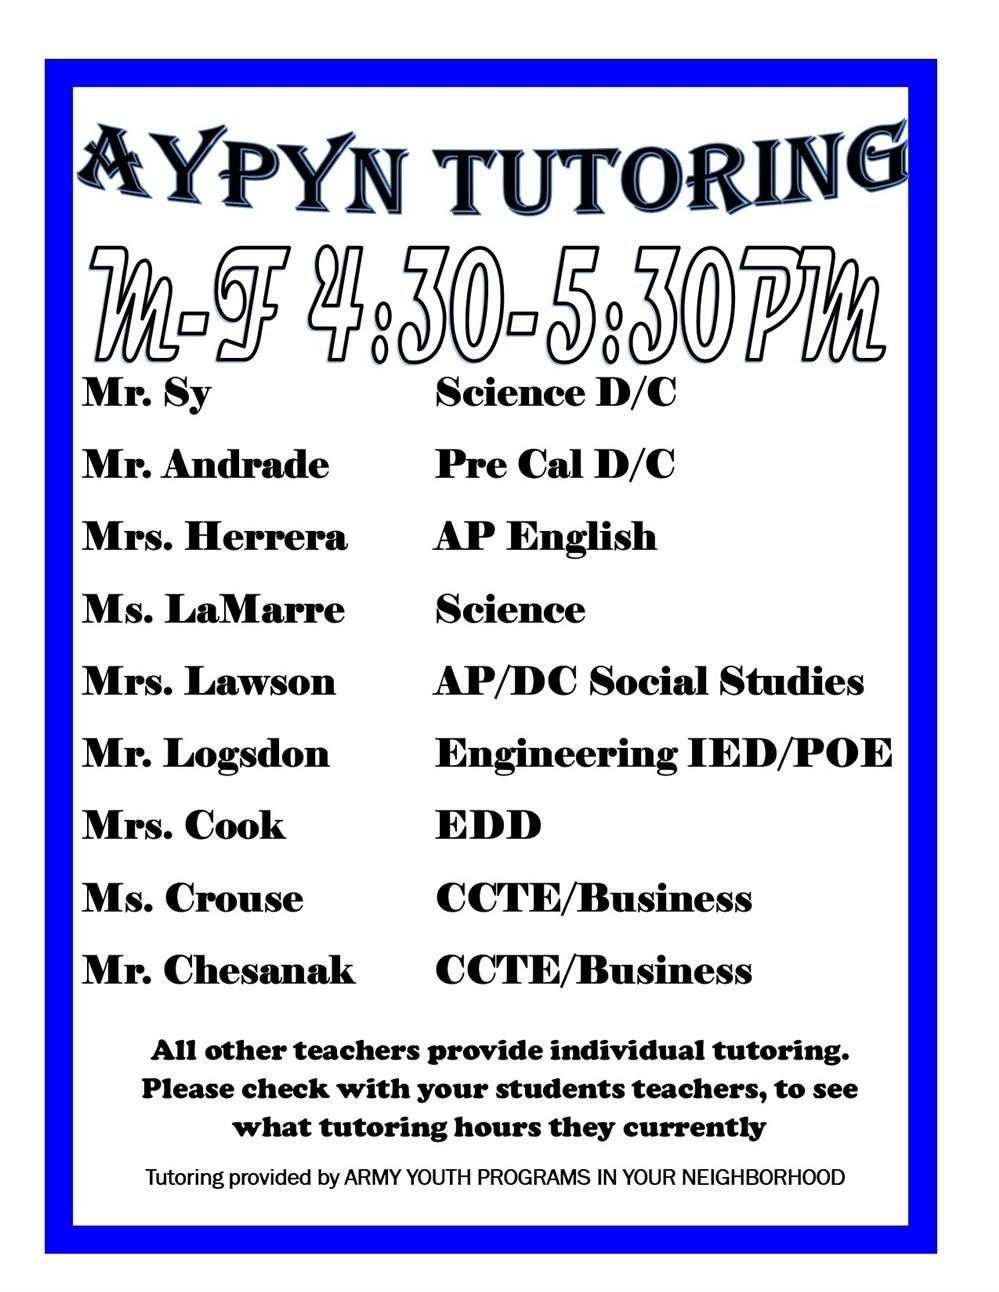 Campus Tutoring Schedules 2020